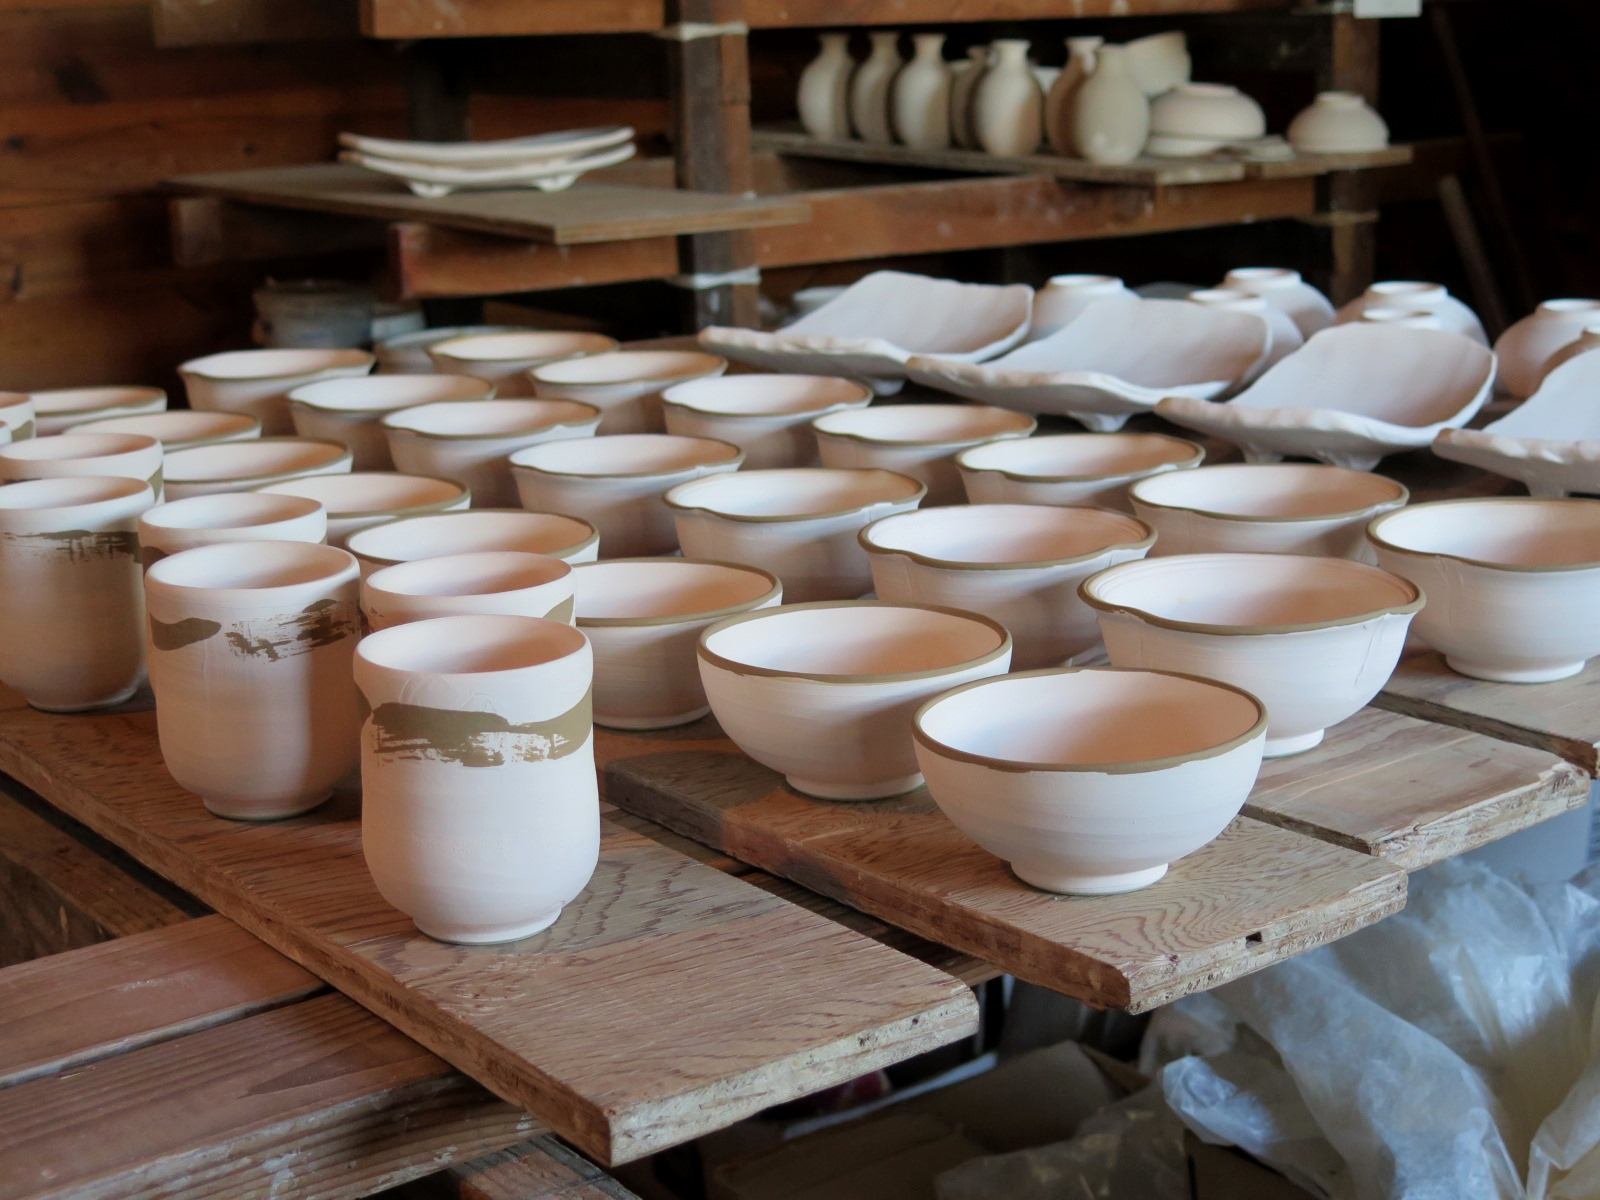 A group of bisqued teacups, bowls and plates.